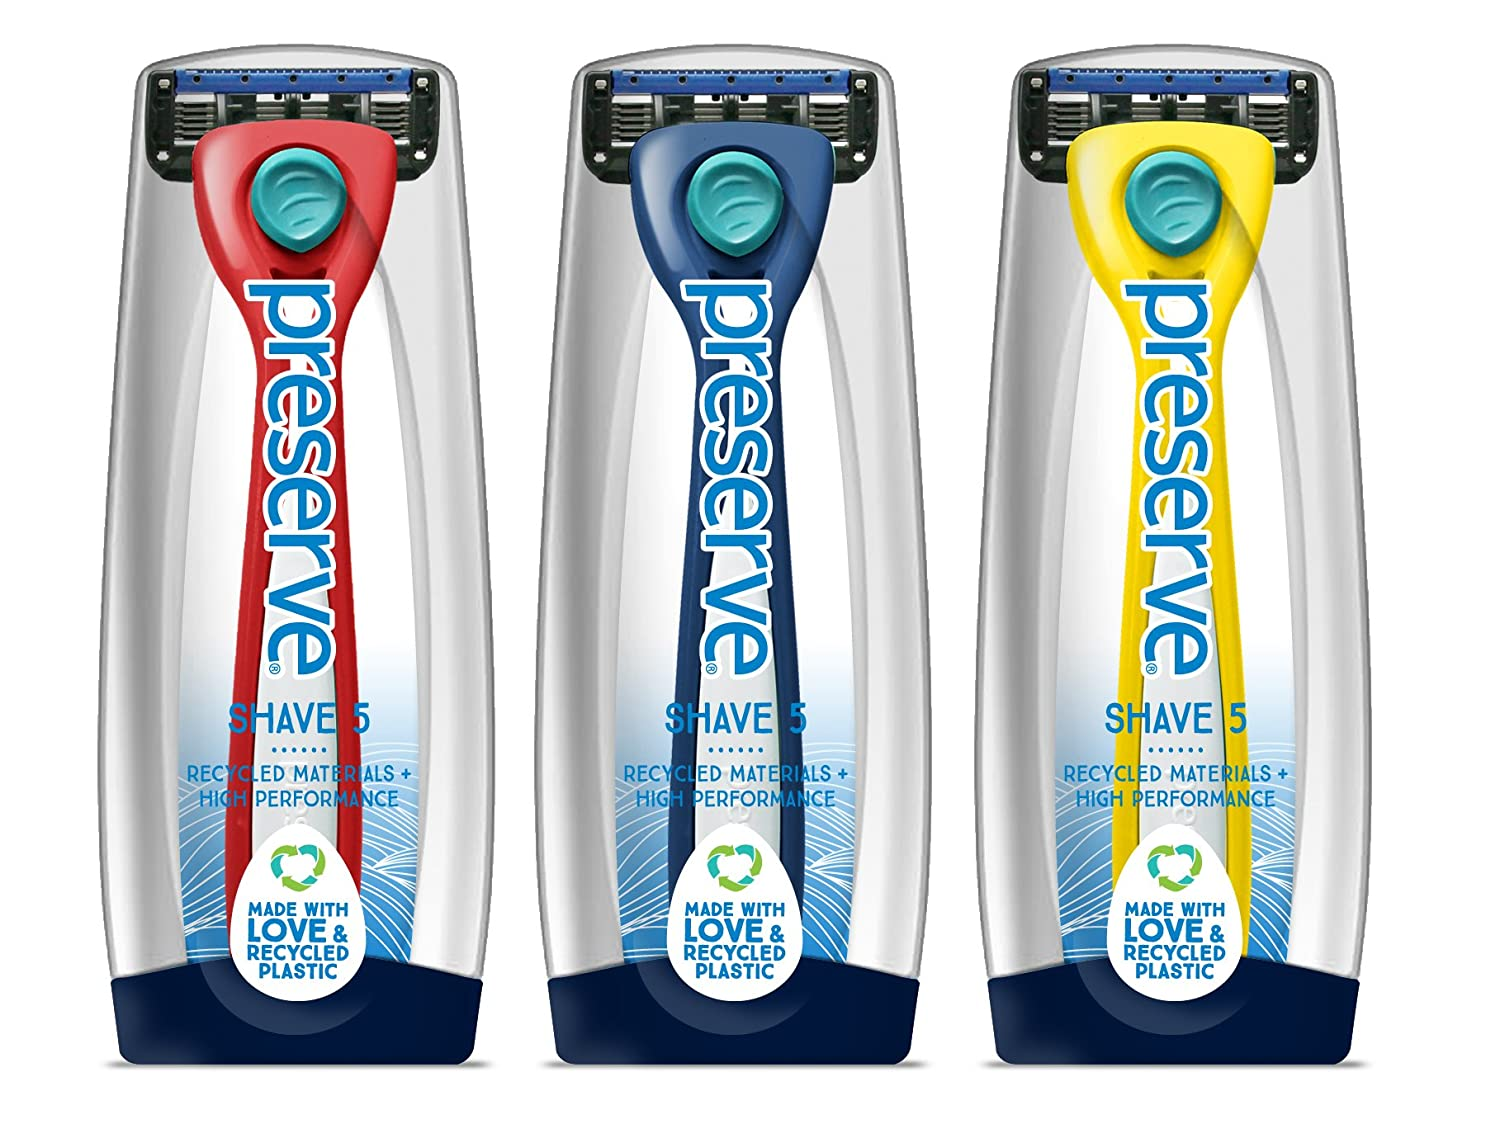 Preserve Shave 5 Five Blade Refillable Razor, Made from Recycled Materials, Assorted Colors: Red/Blue/Yellow (Color May Vary) Recycline Inc.